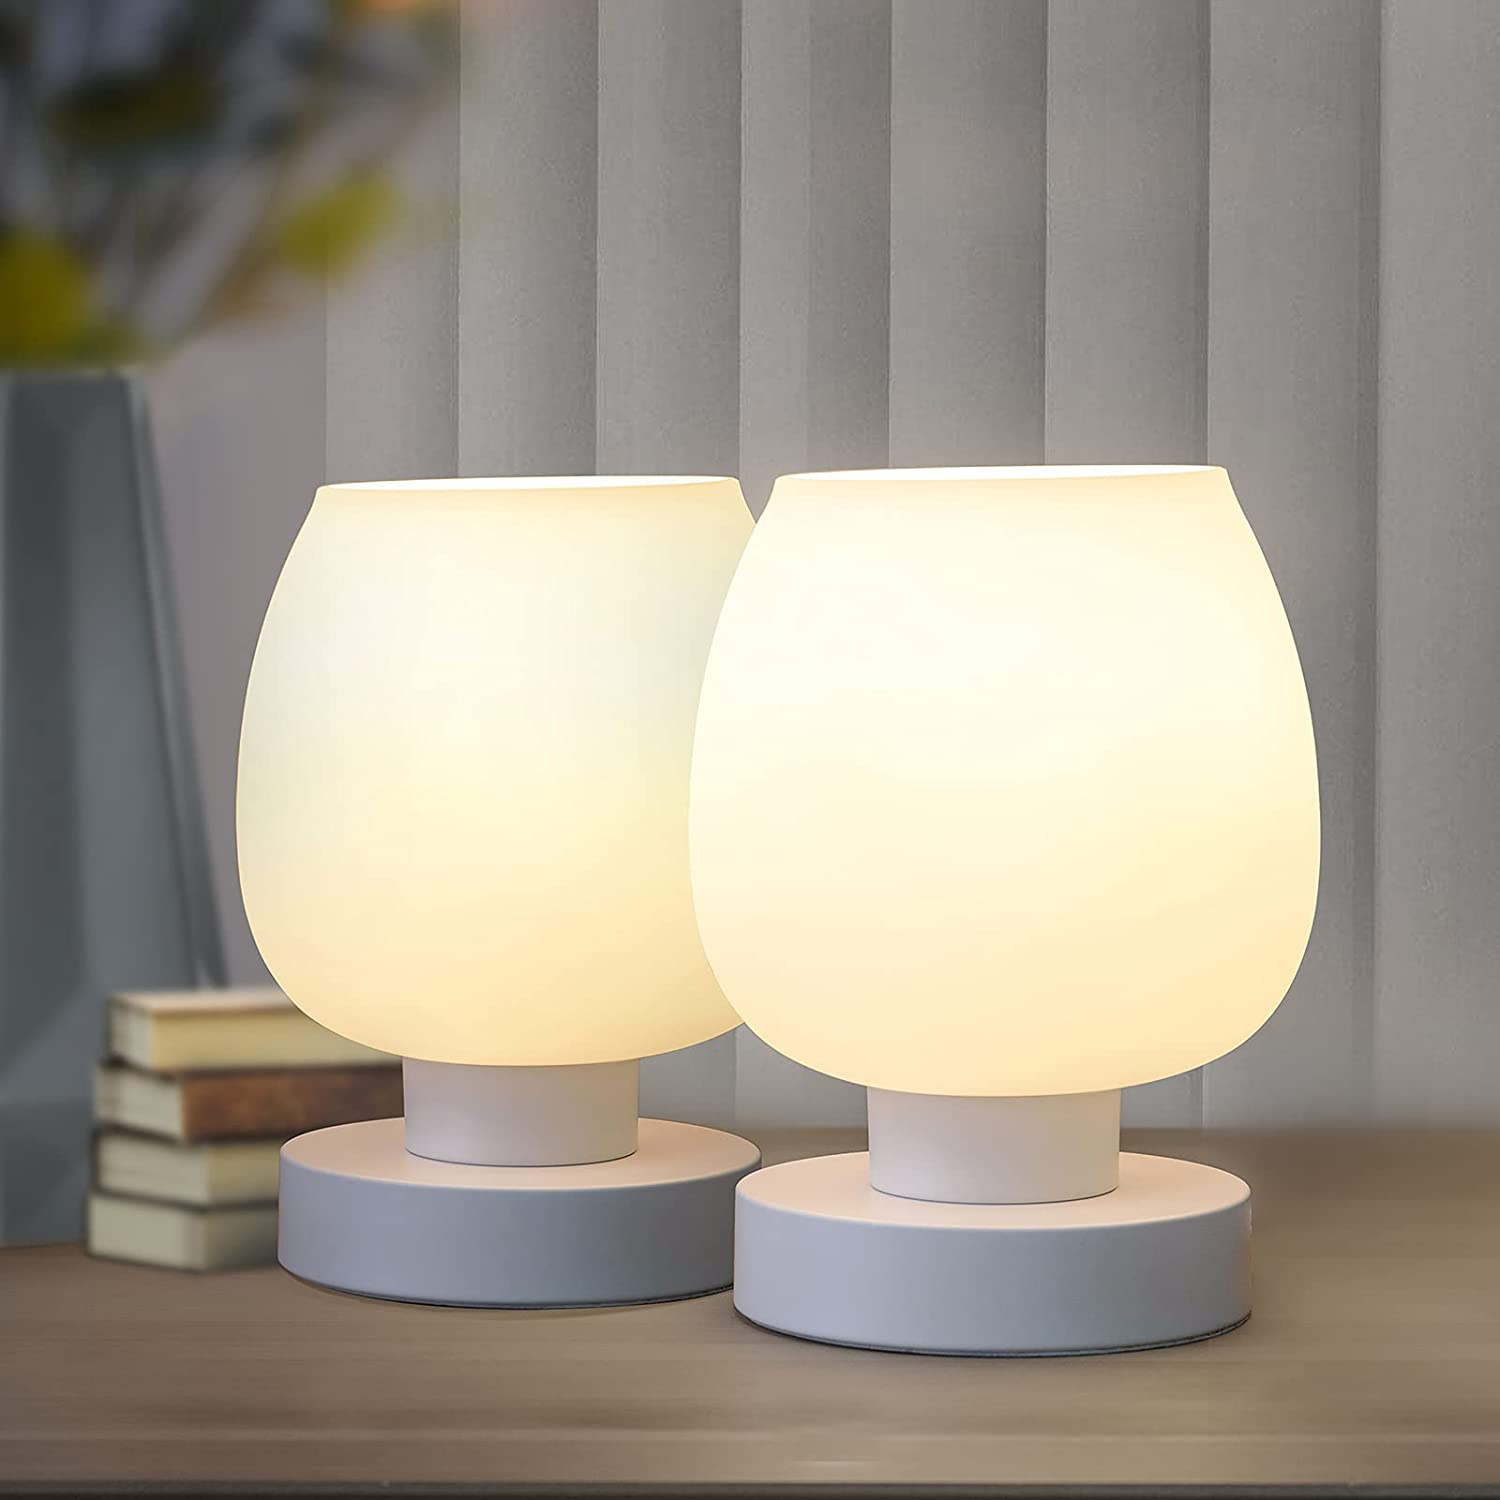 Touch Control Bedside San Antonio Mall Table Lamp Bedroom Modern Super sale period limited - for